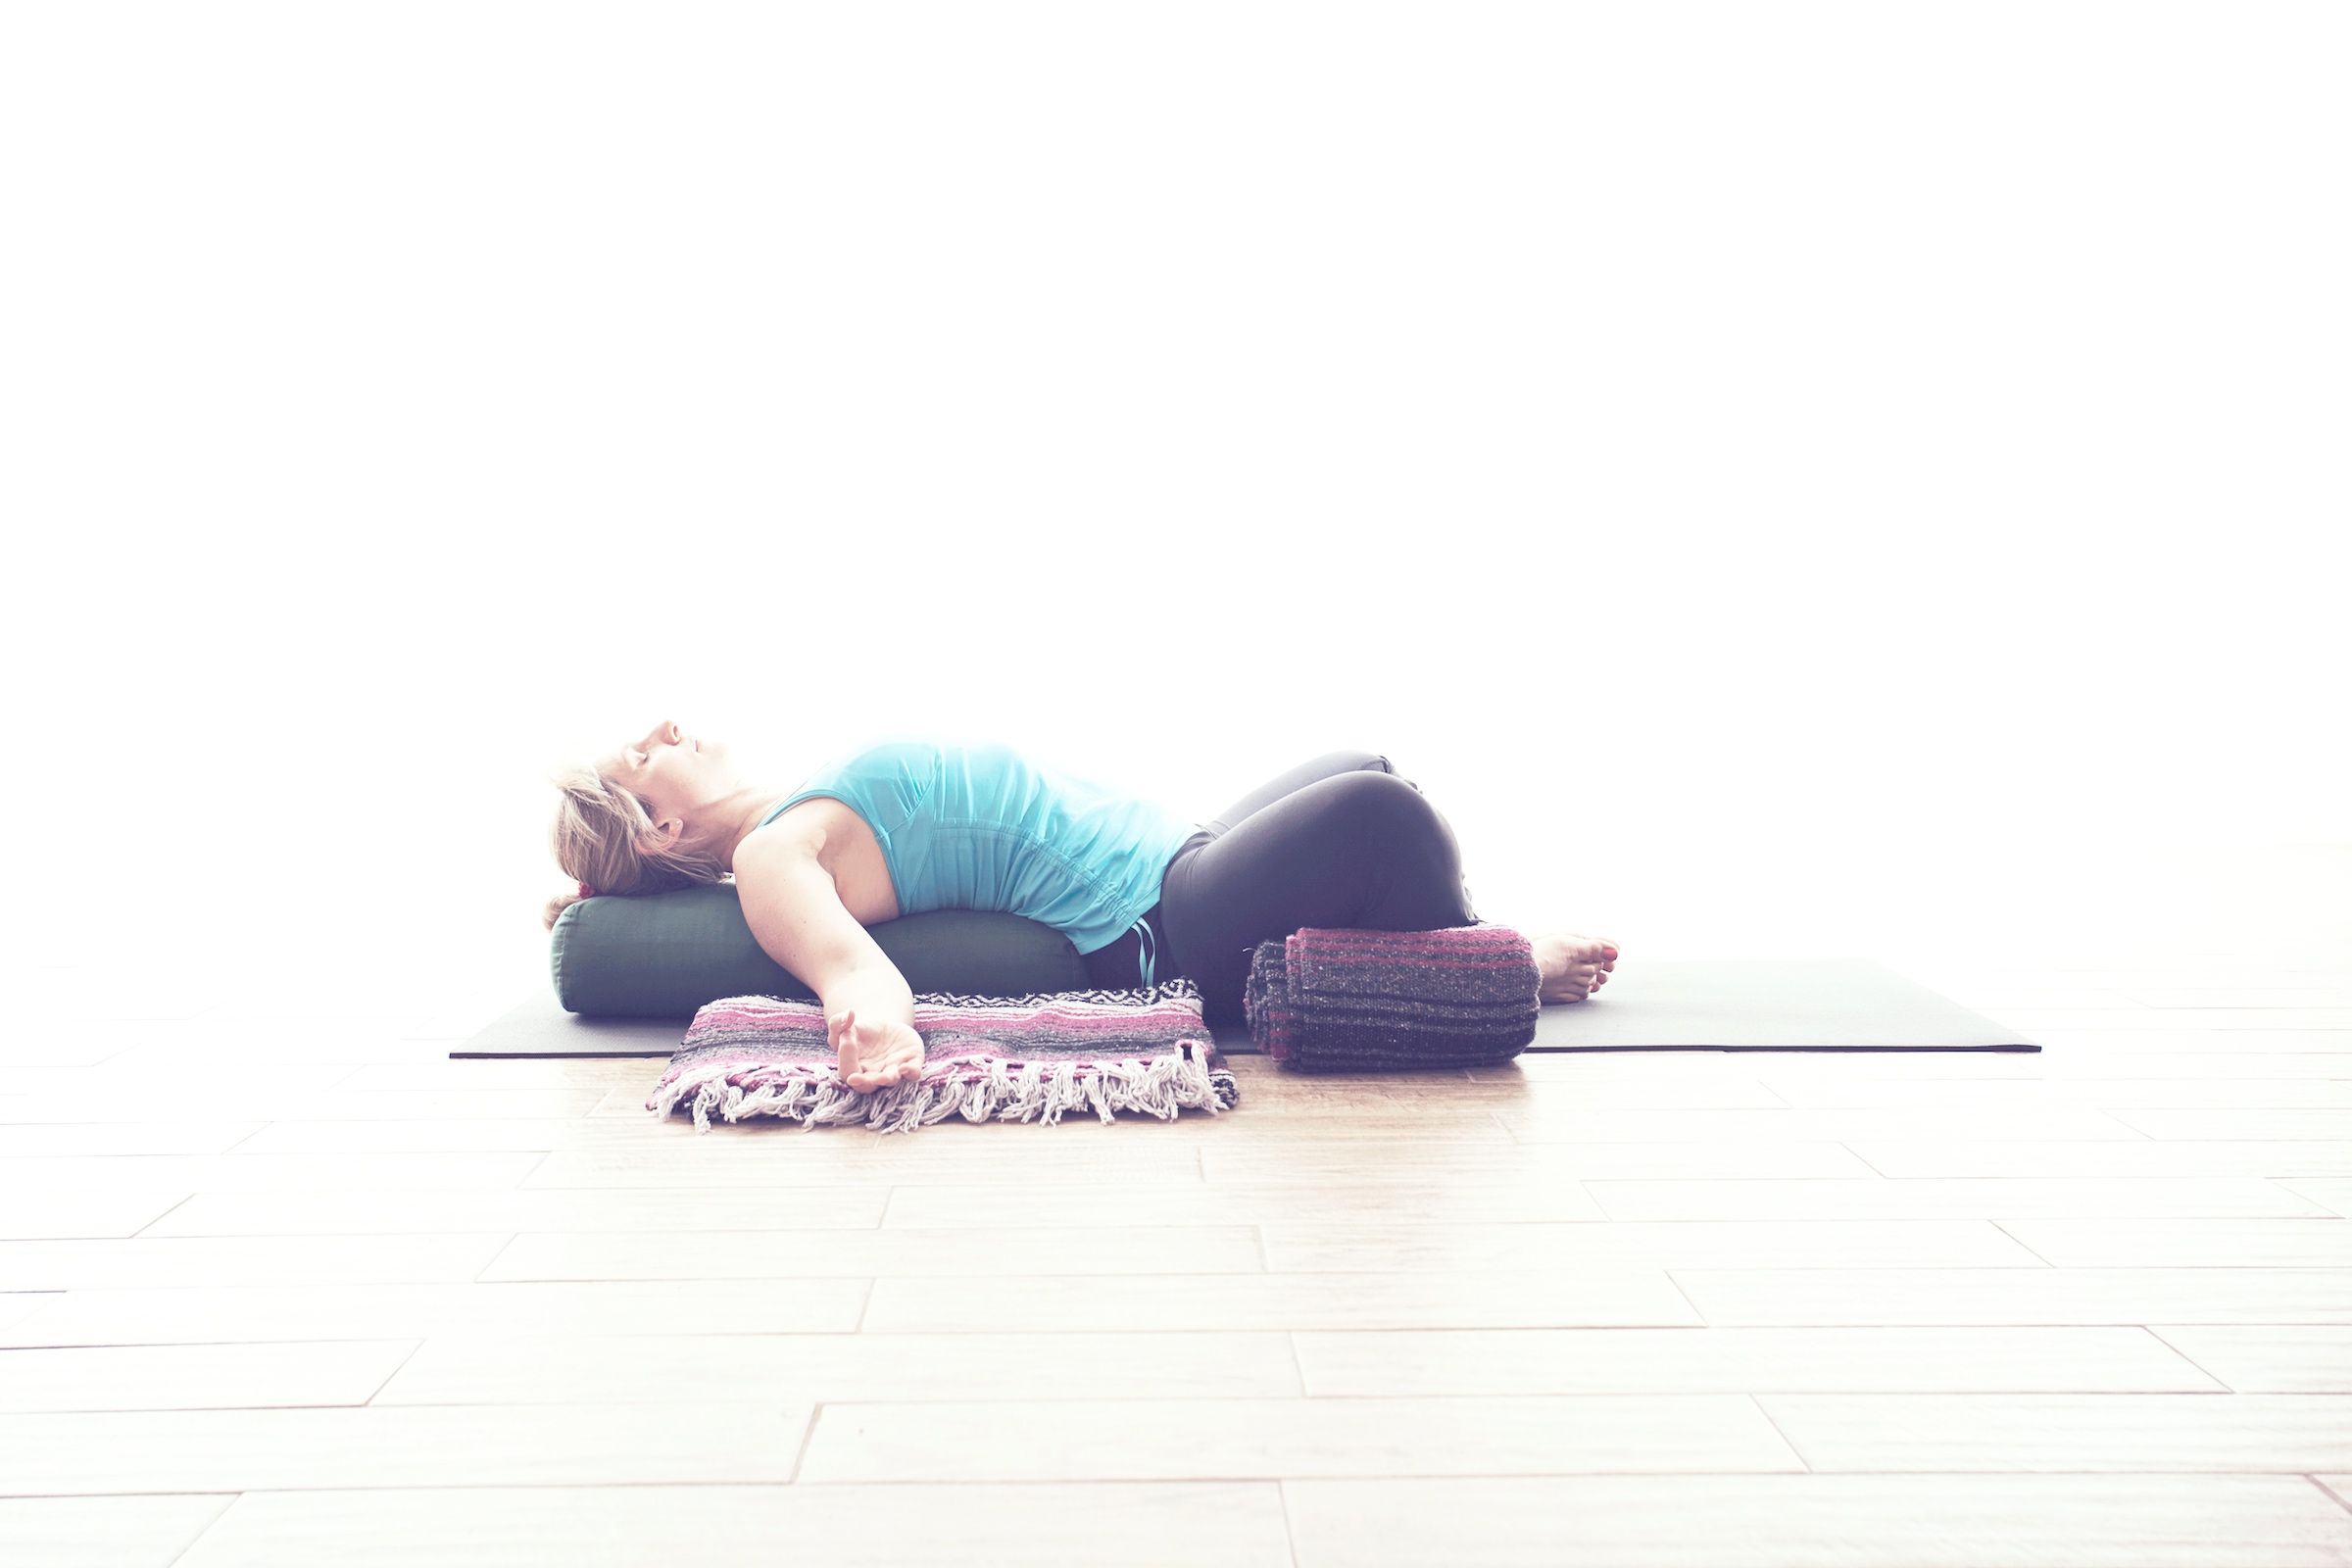 Restorative  Apart from taking time to sleep, we rarely take time to rest despite the busy pace of life we keep. Restorative yoga helps us learn to relax and rest deeply by allowing props to support the body in poses for deeper opening.